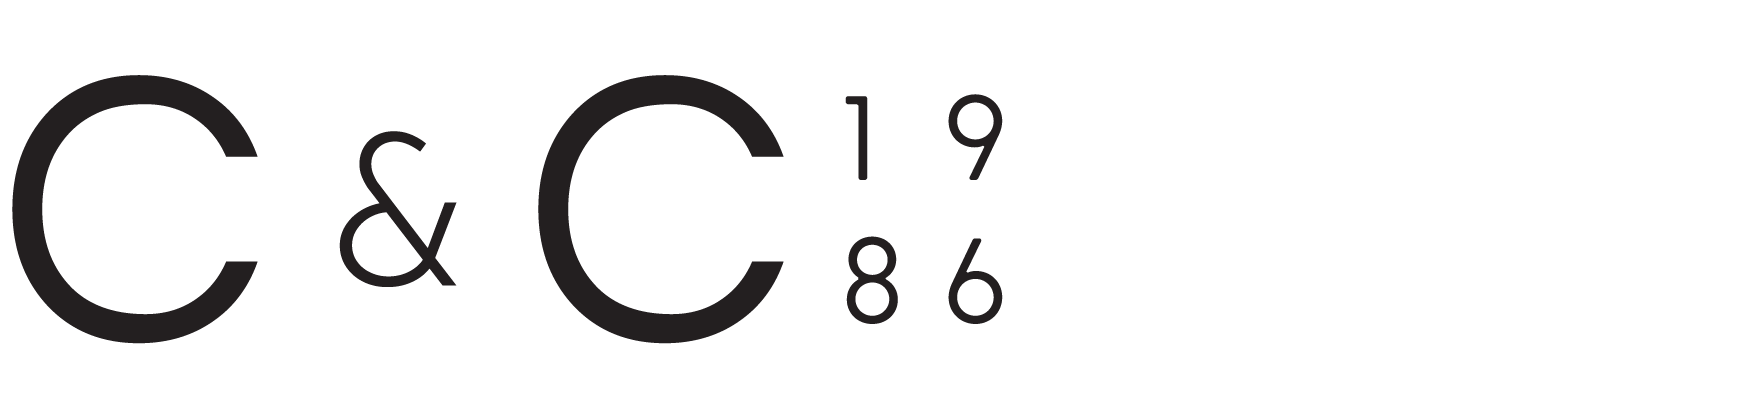 Cesario+and+Co+Logo+-+Wordmark+Black+SMALL-01-01-01-01.png